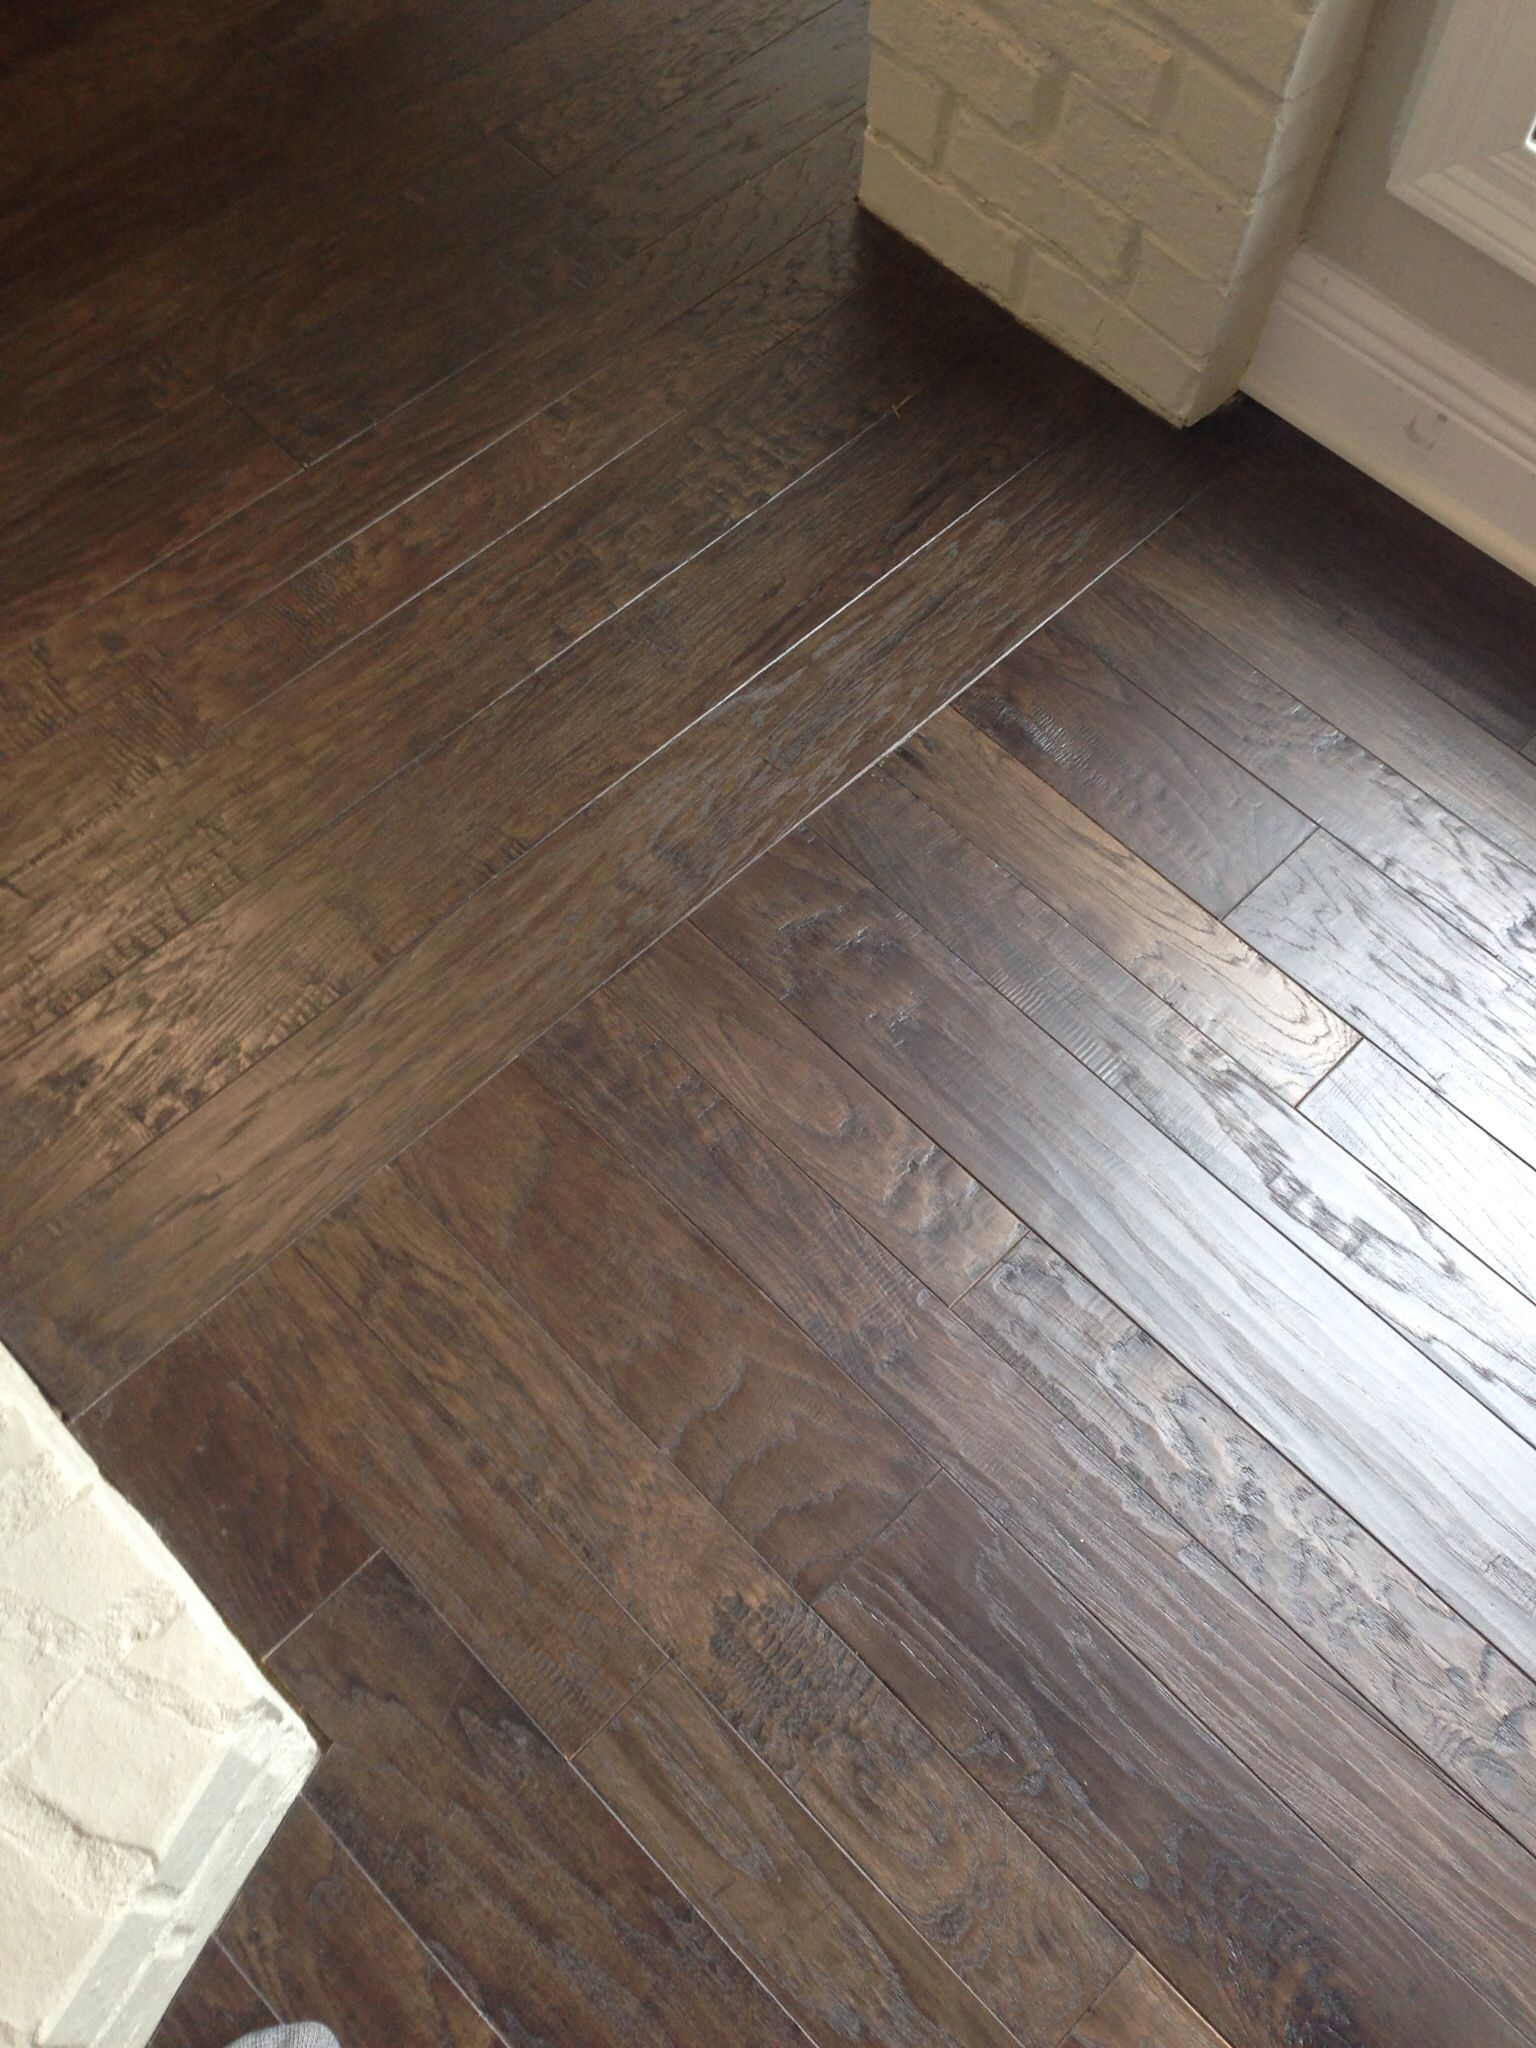 Patterned wood with a direction change transition wood floors patterned wood with a direction change transition best wood flooringhardwood floorstile dailygadgetfo Choice Image